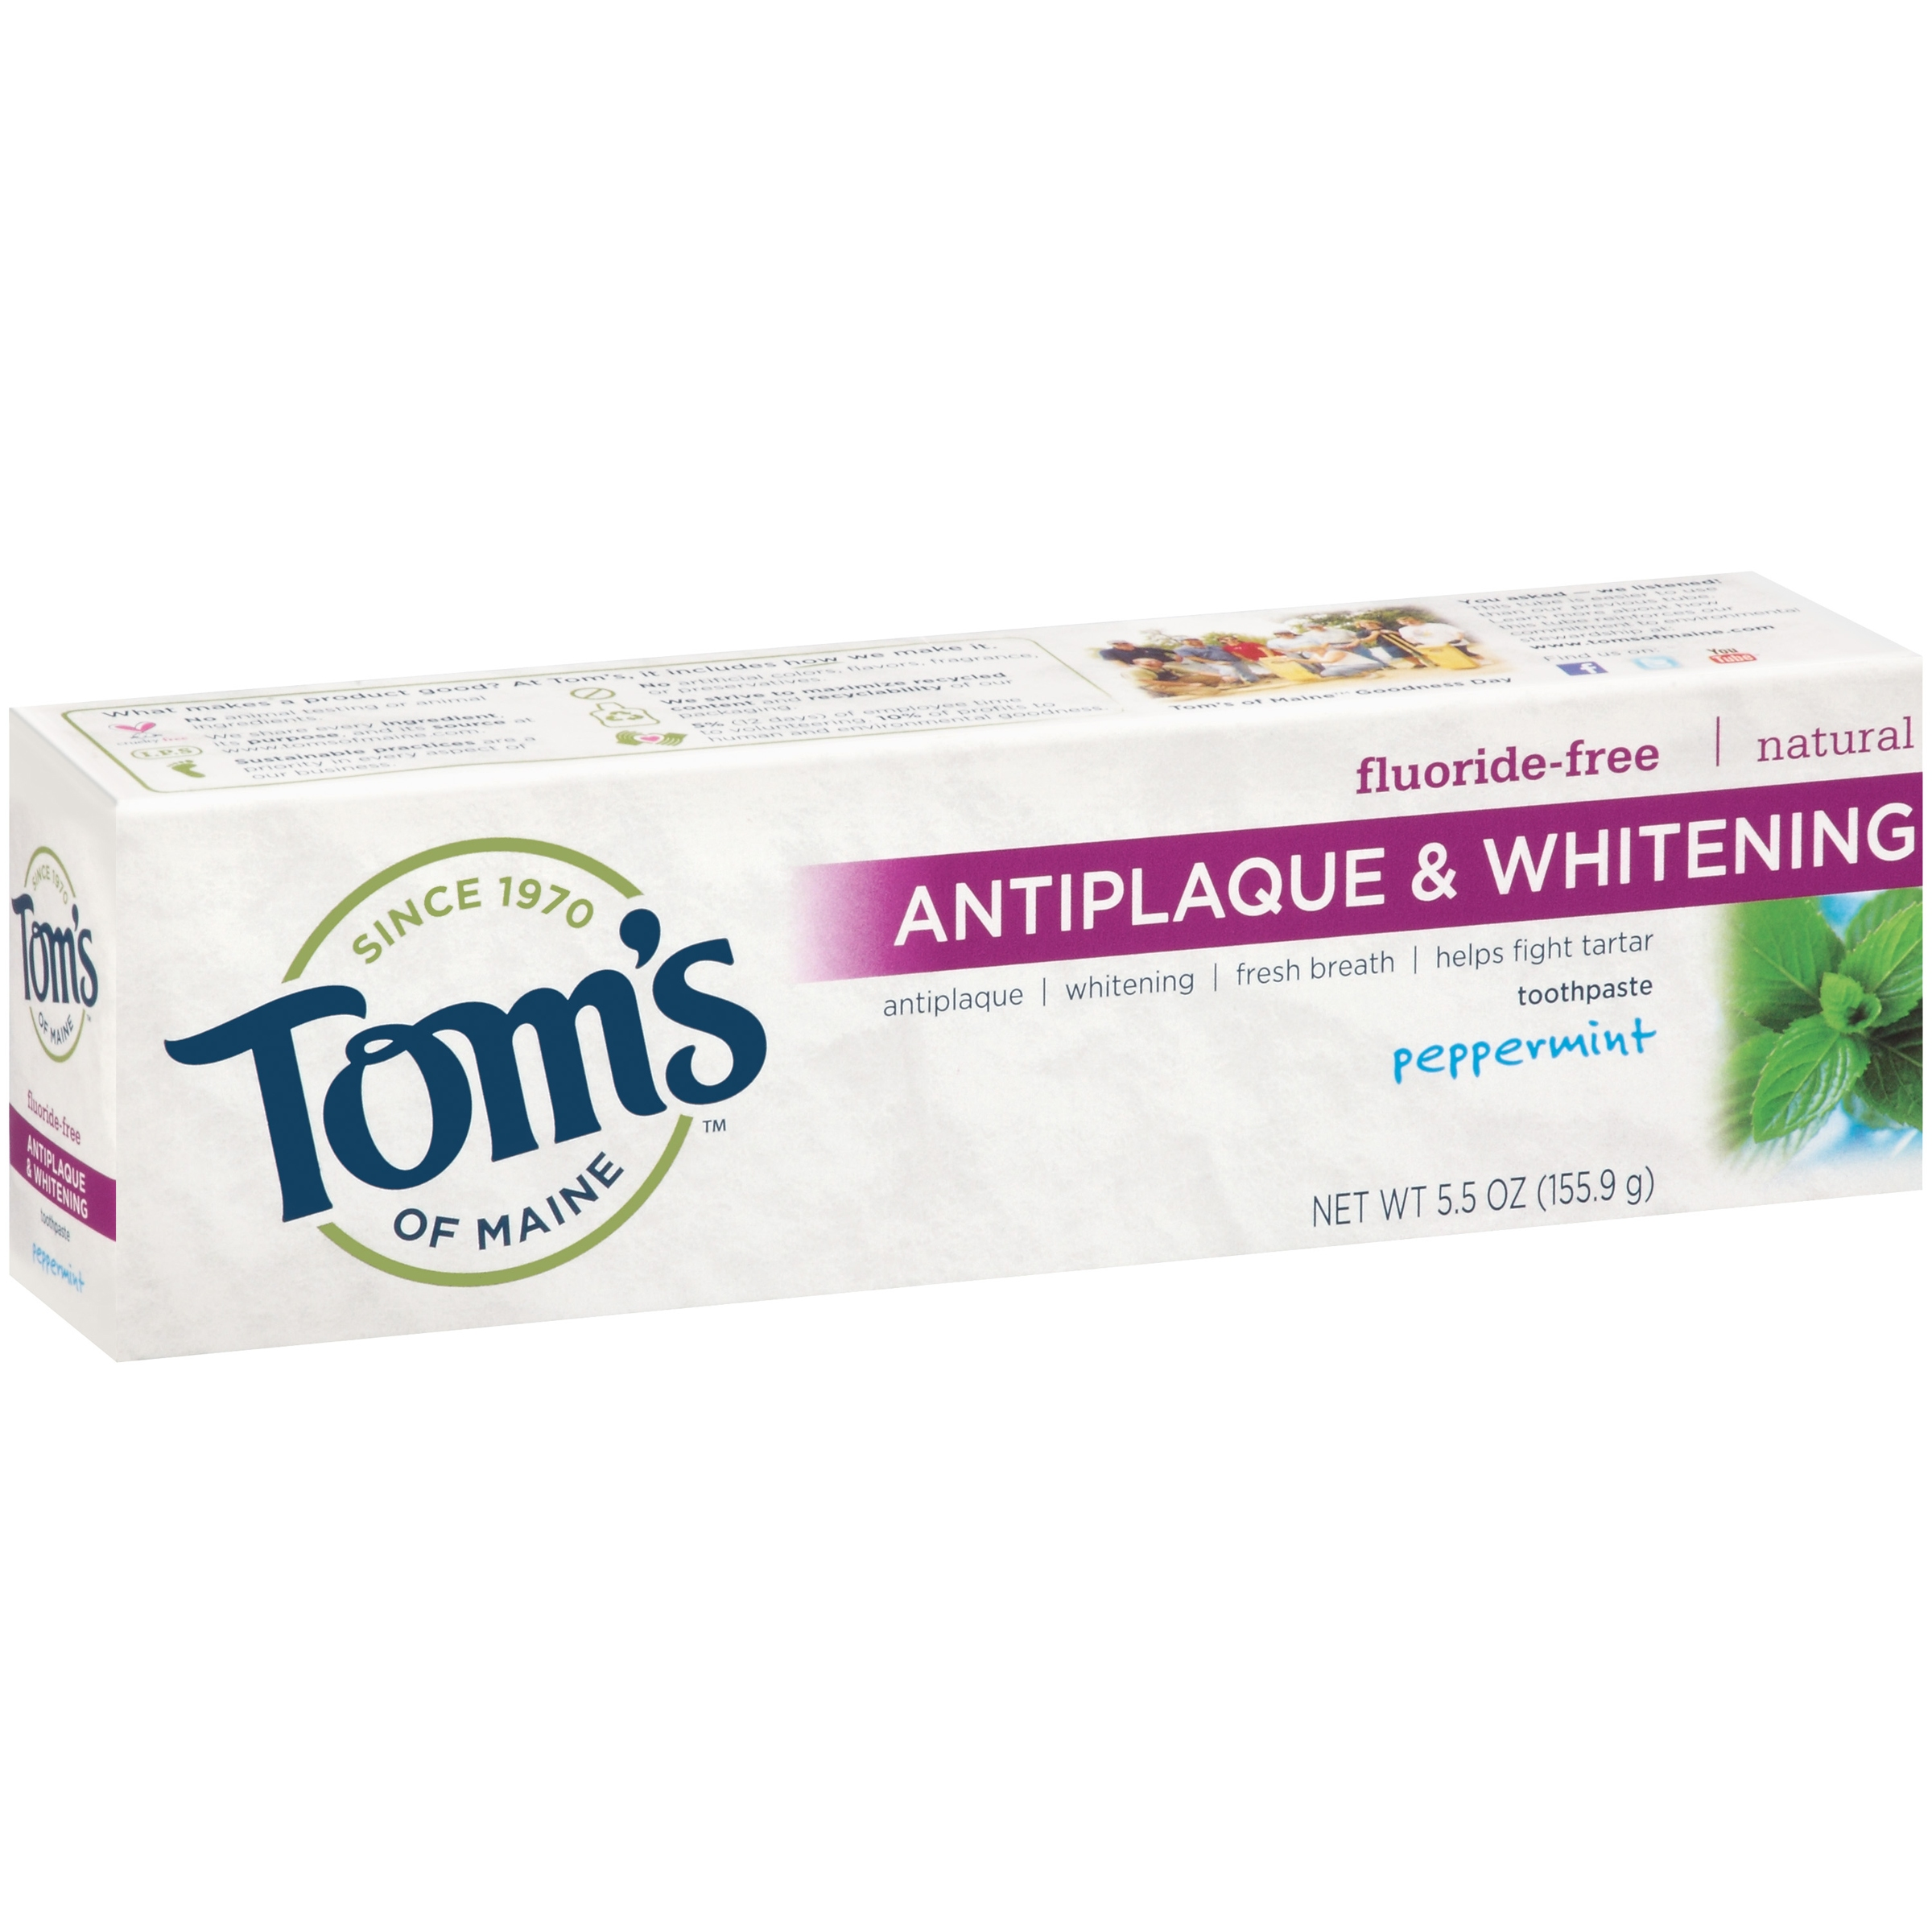 Tom's of Maine Antiplaque and Whitening Toothpaste Peppermint - 5.5 oz